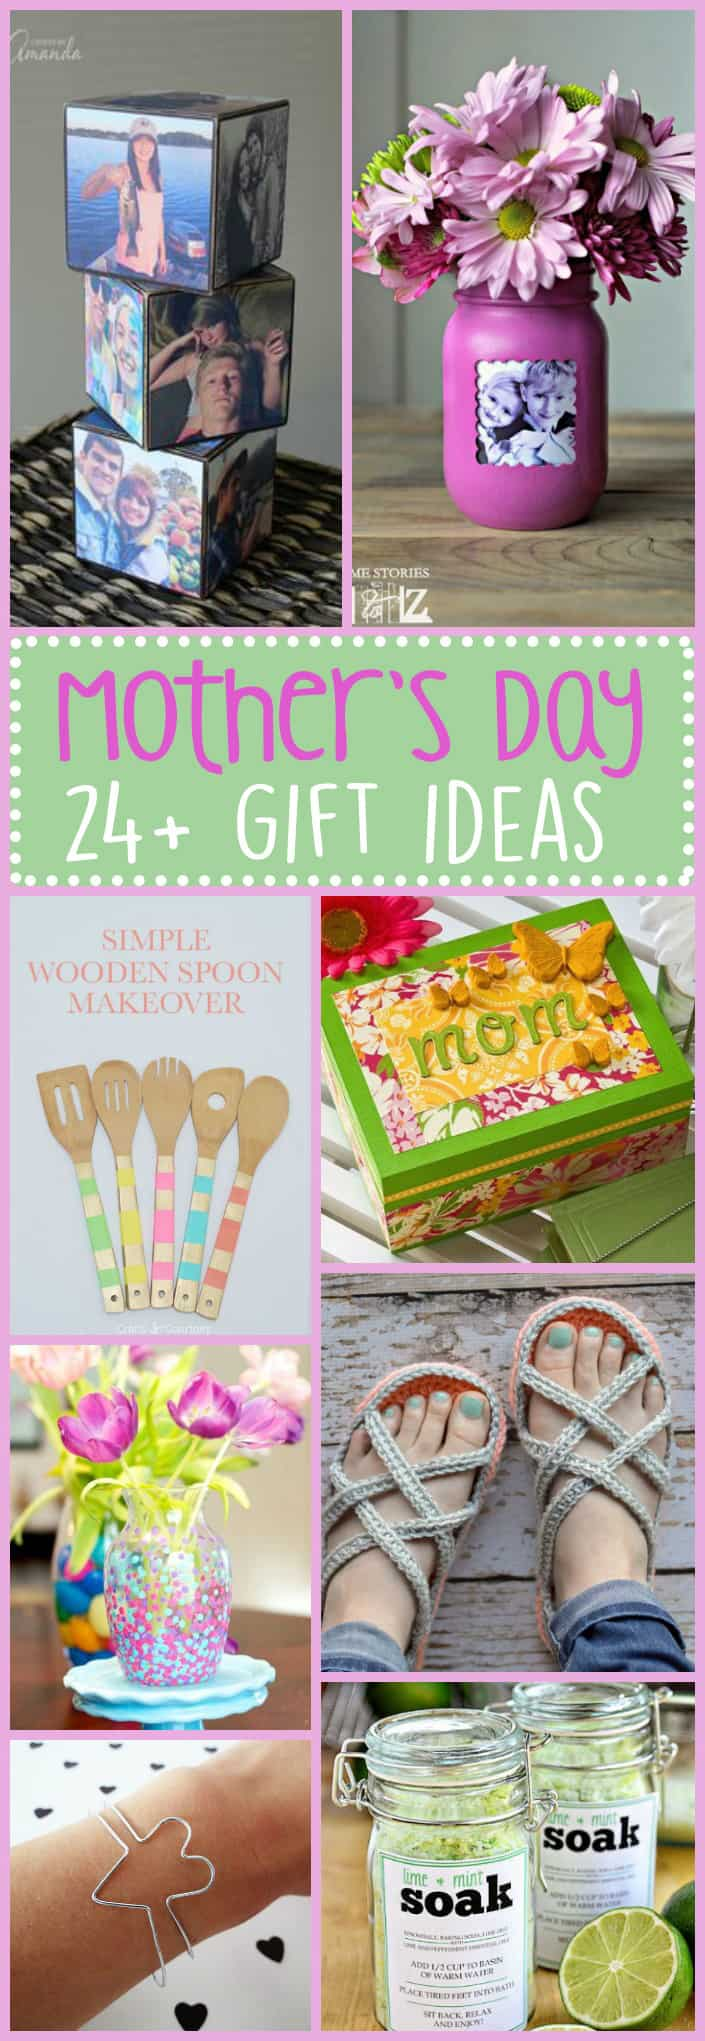 These Mother's Day Gift Ideas are sure to bring a smile to your mom's face on Mother's Day. A roundup of great adult crafts to shower your mom with love!